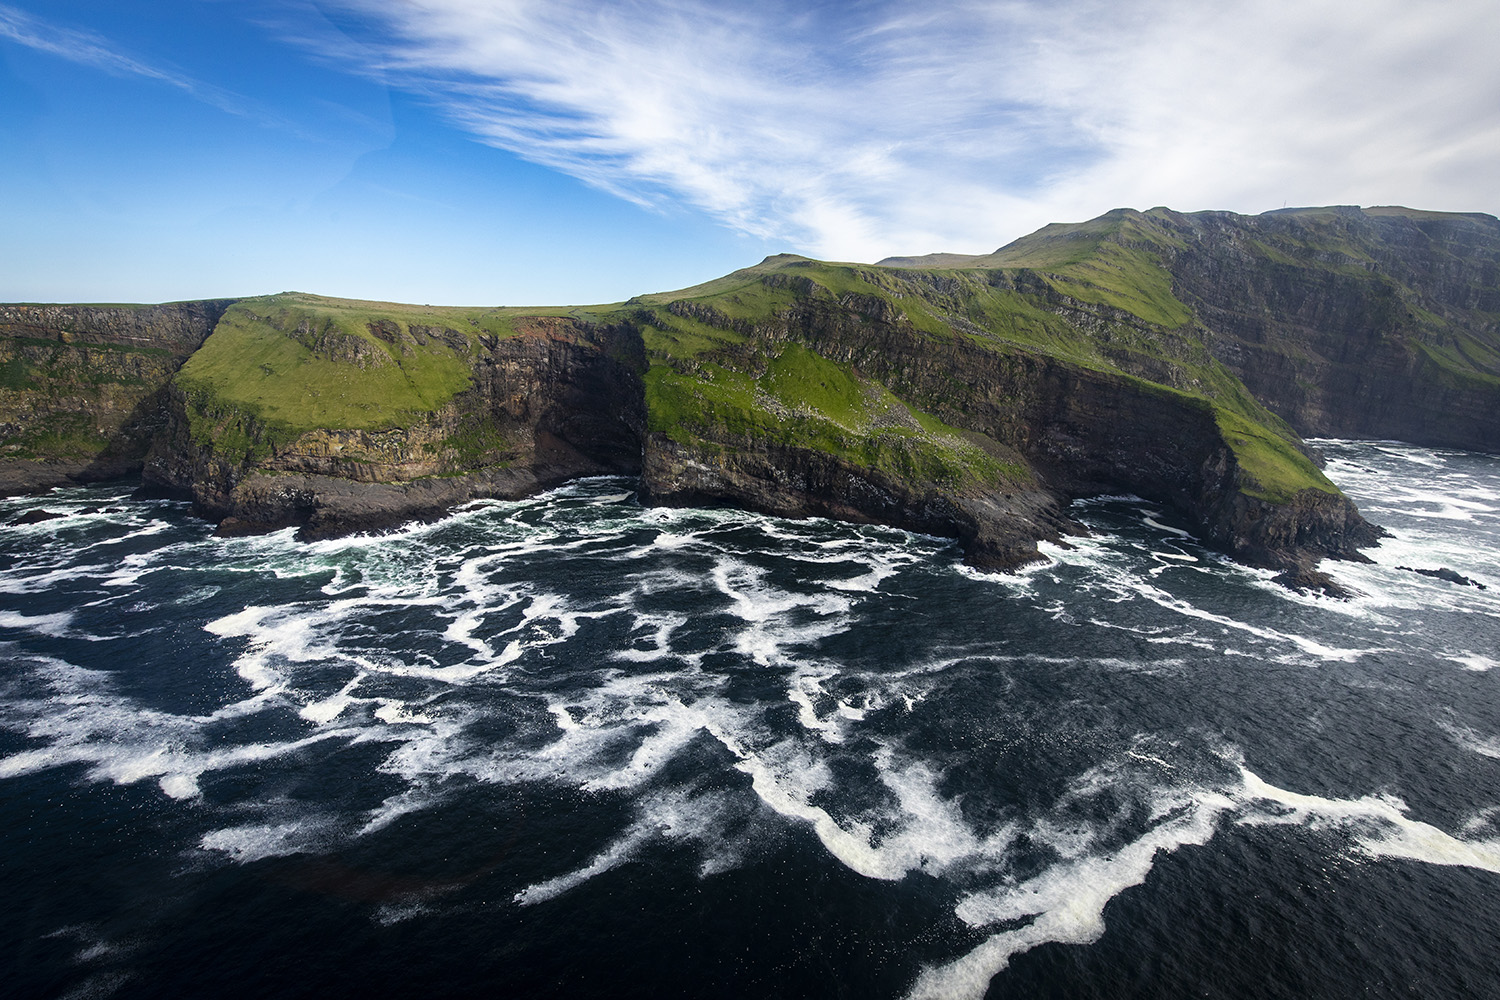 Mykines view from helicopter, Faroe Islands